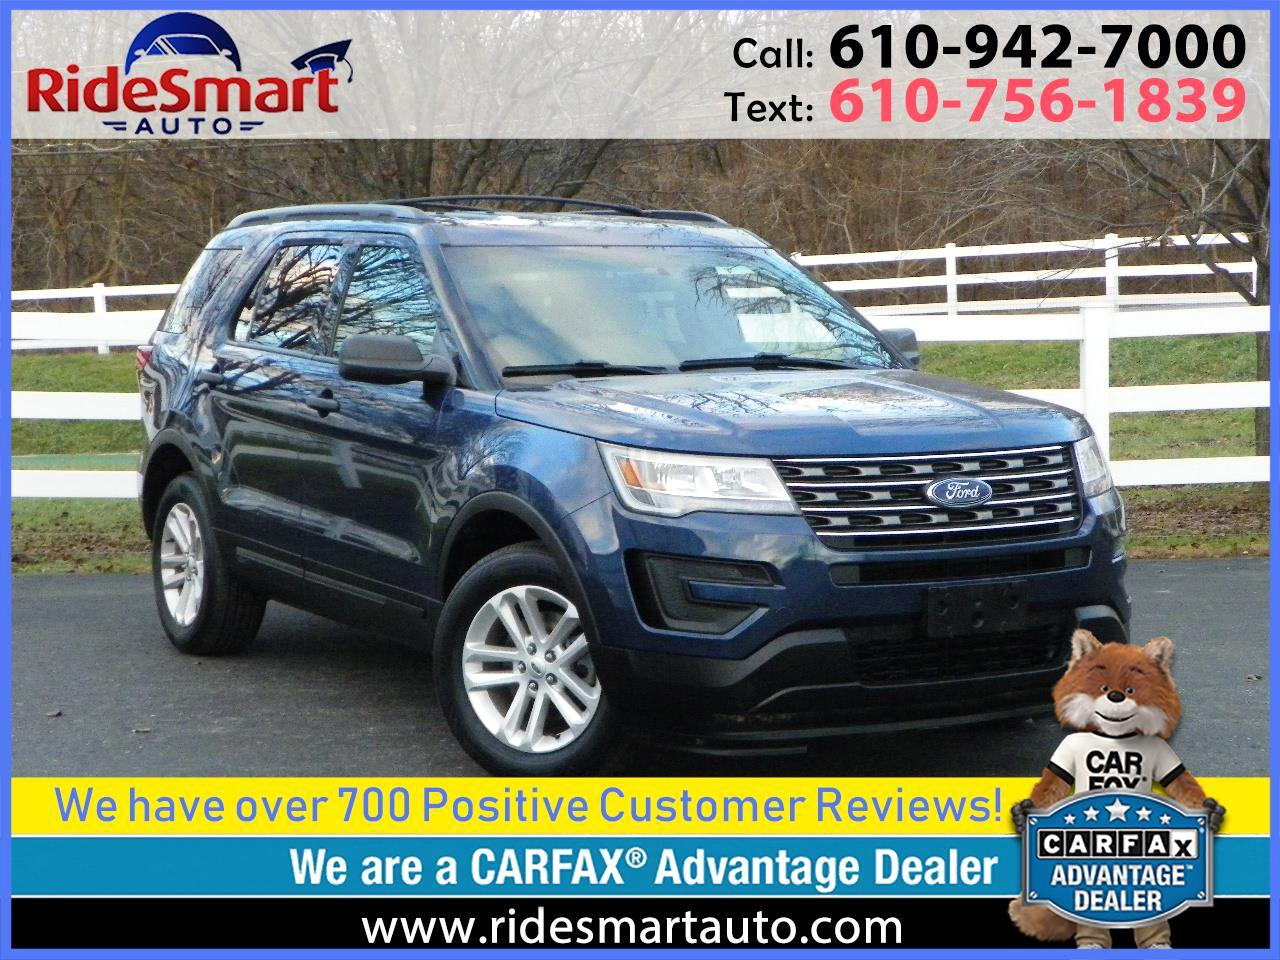 2016 Ford Explorer 4WD 6 Cylinder-3rd Row Seat-Bluetooth-Rear Camera